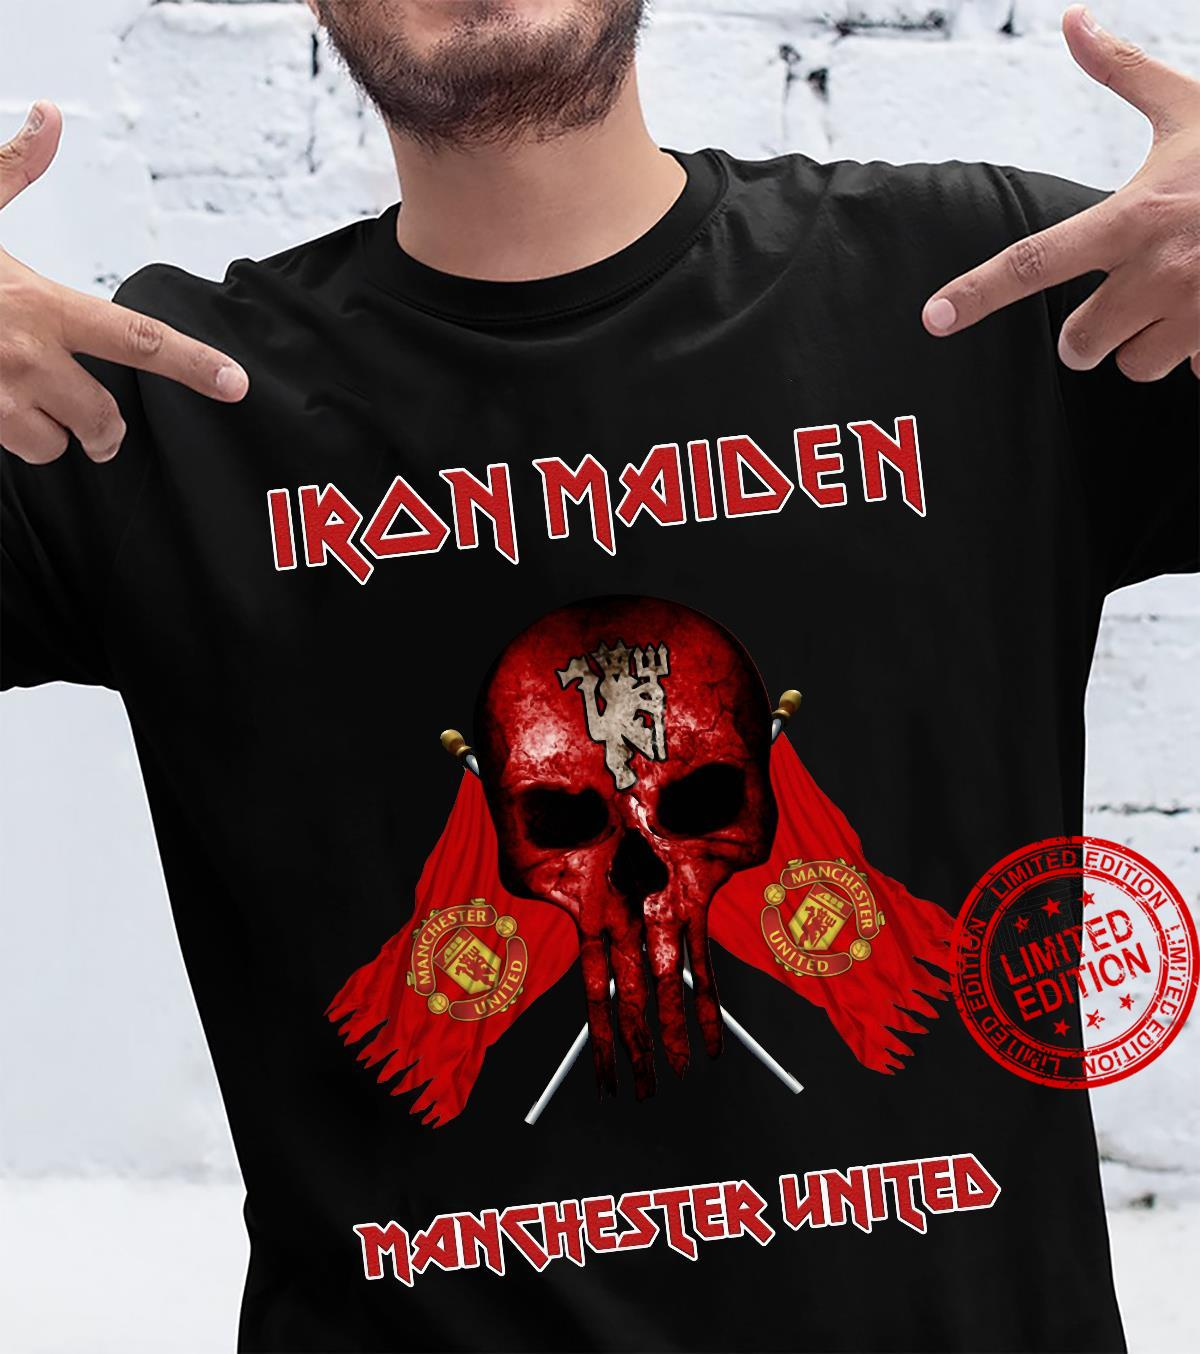 Iron Maiden Maschester United Shirt